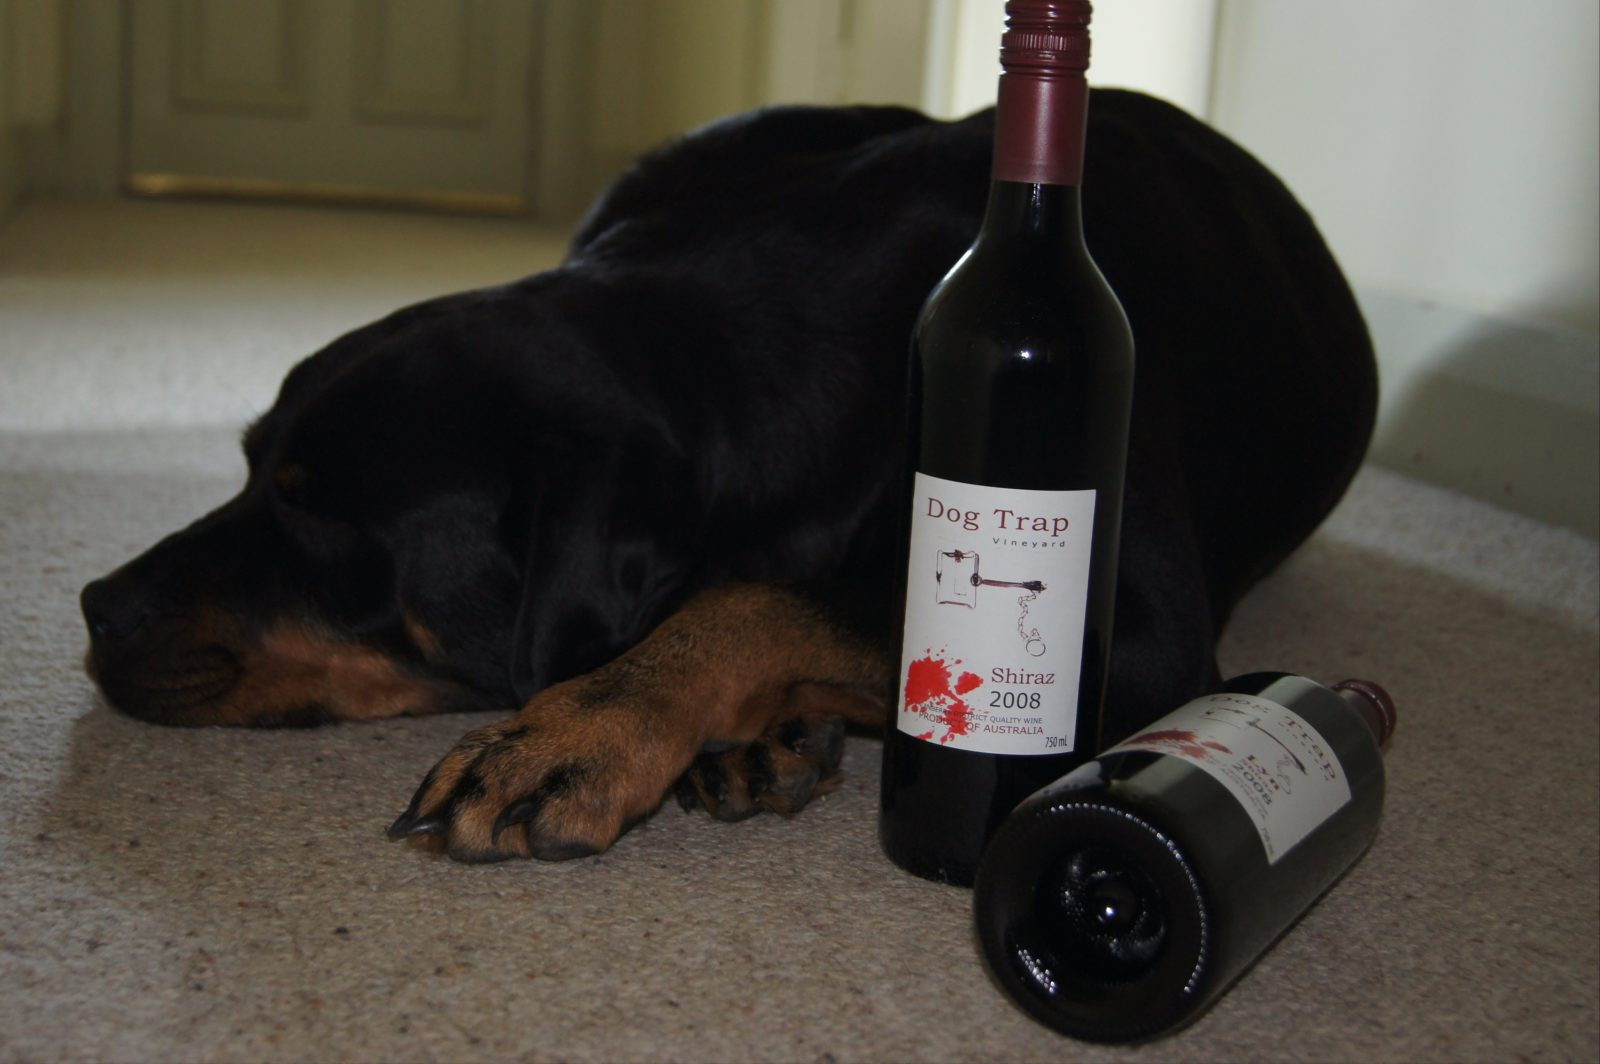 Dog Trap's wine and their dog